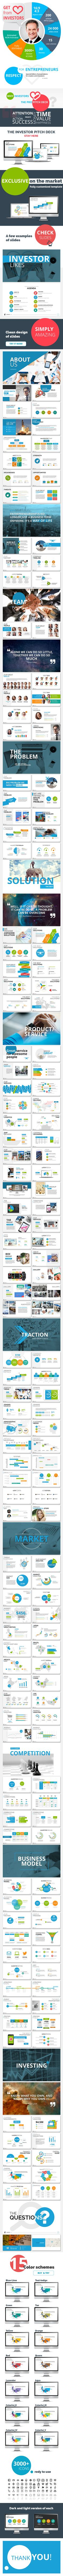 #InvestorsLike Pro Pitch Deck PowerPoint Presentation — Powerpoint PPTX #professional #pitch deck powerpoint • Available here → https://graphicriver.net/item/investorslike-pro-pitch-deck-powerpoint-presentation/18519821?ref=pxcr